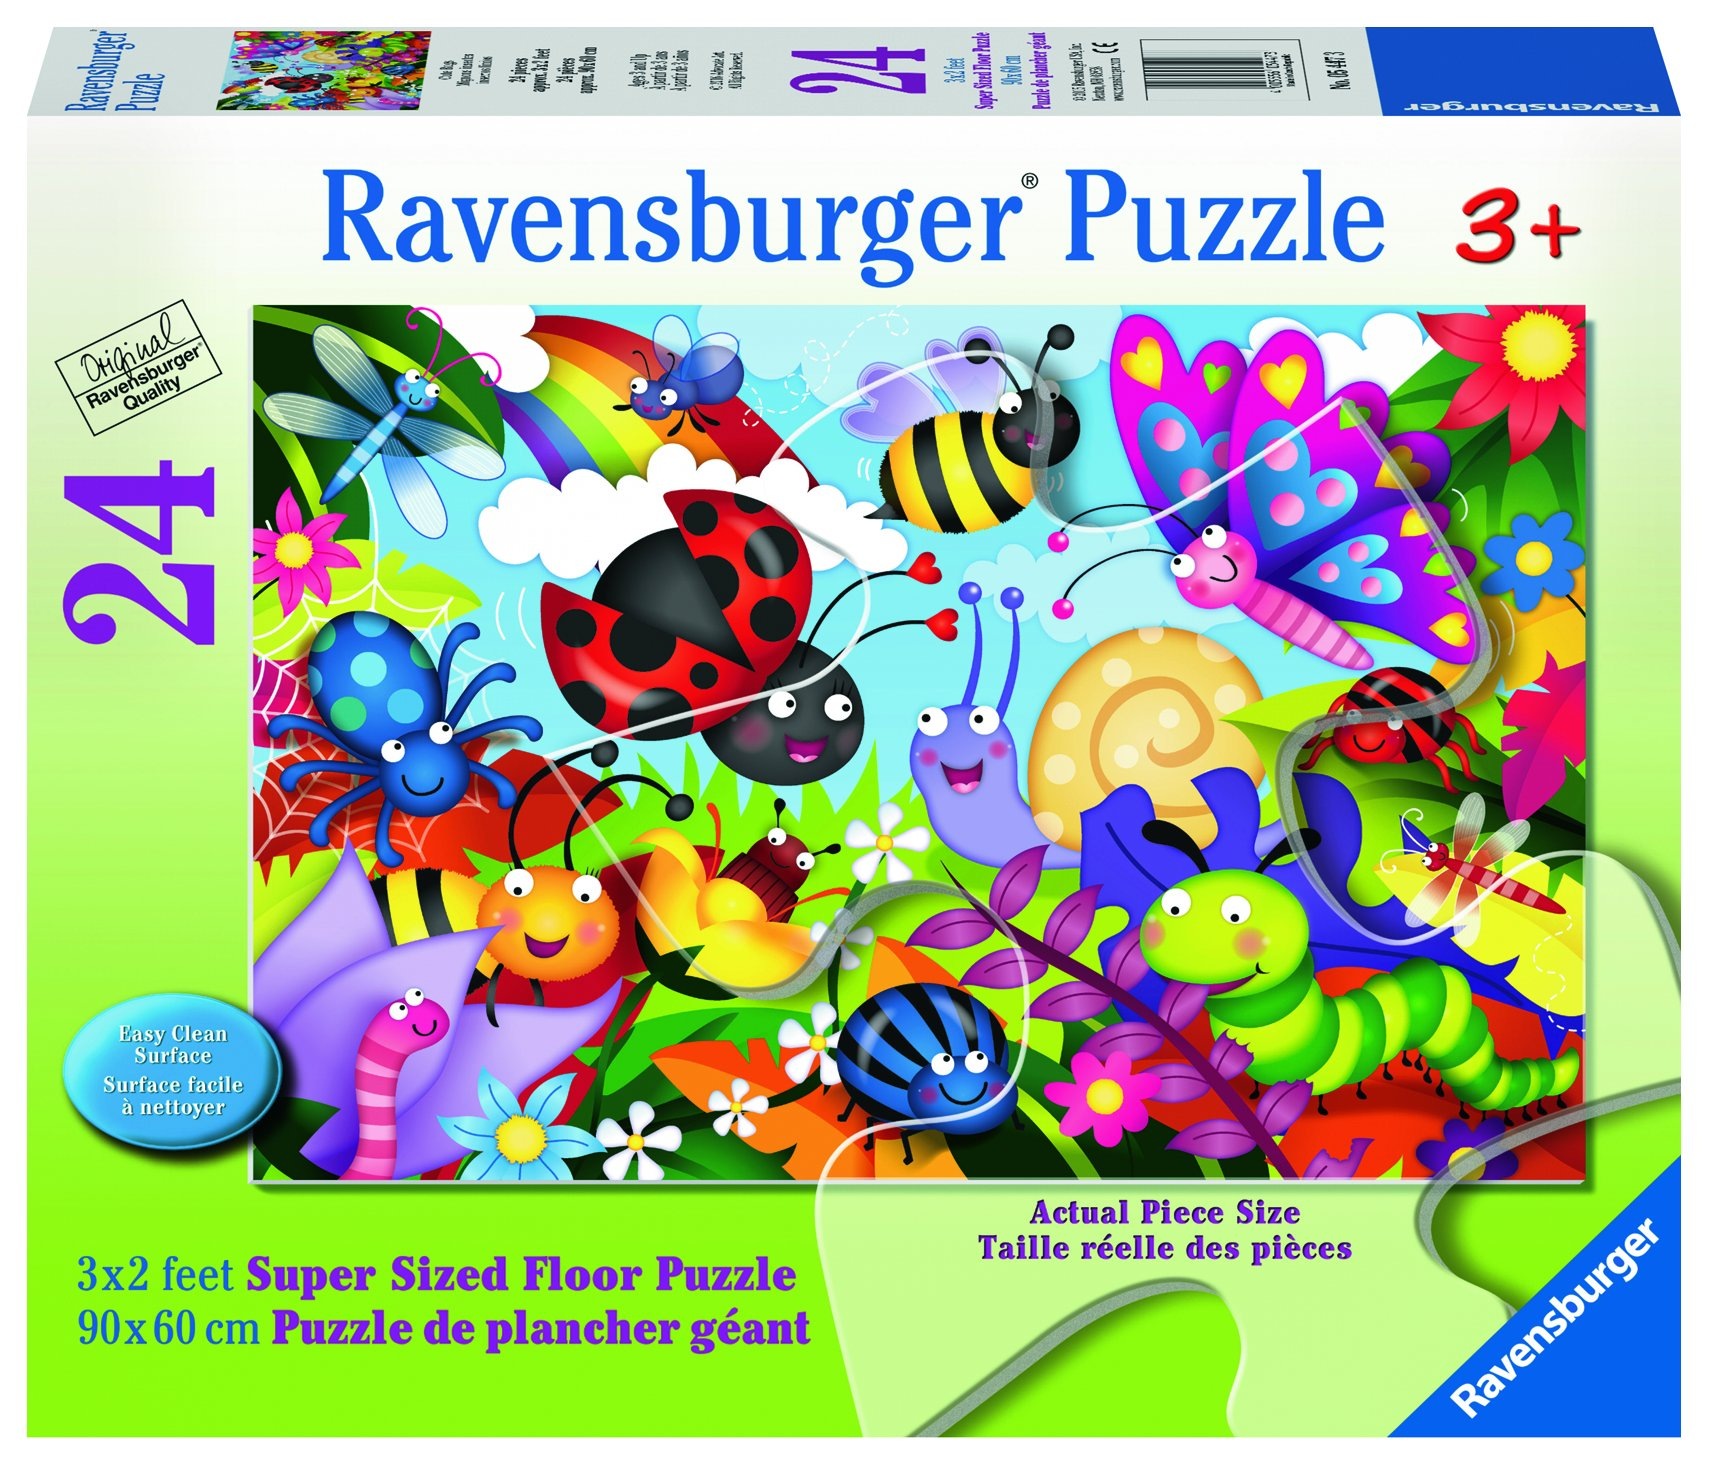 Ravensburger - Cute Bugs - 24 Piece Jigsaw Puzzle for Kids – Every Piece is Unique, Pieces Fit Together Perfectly